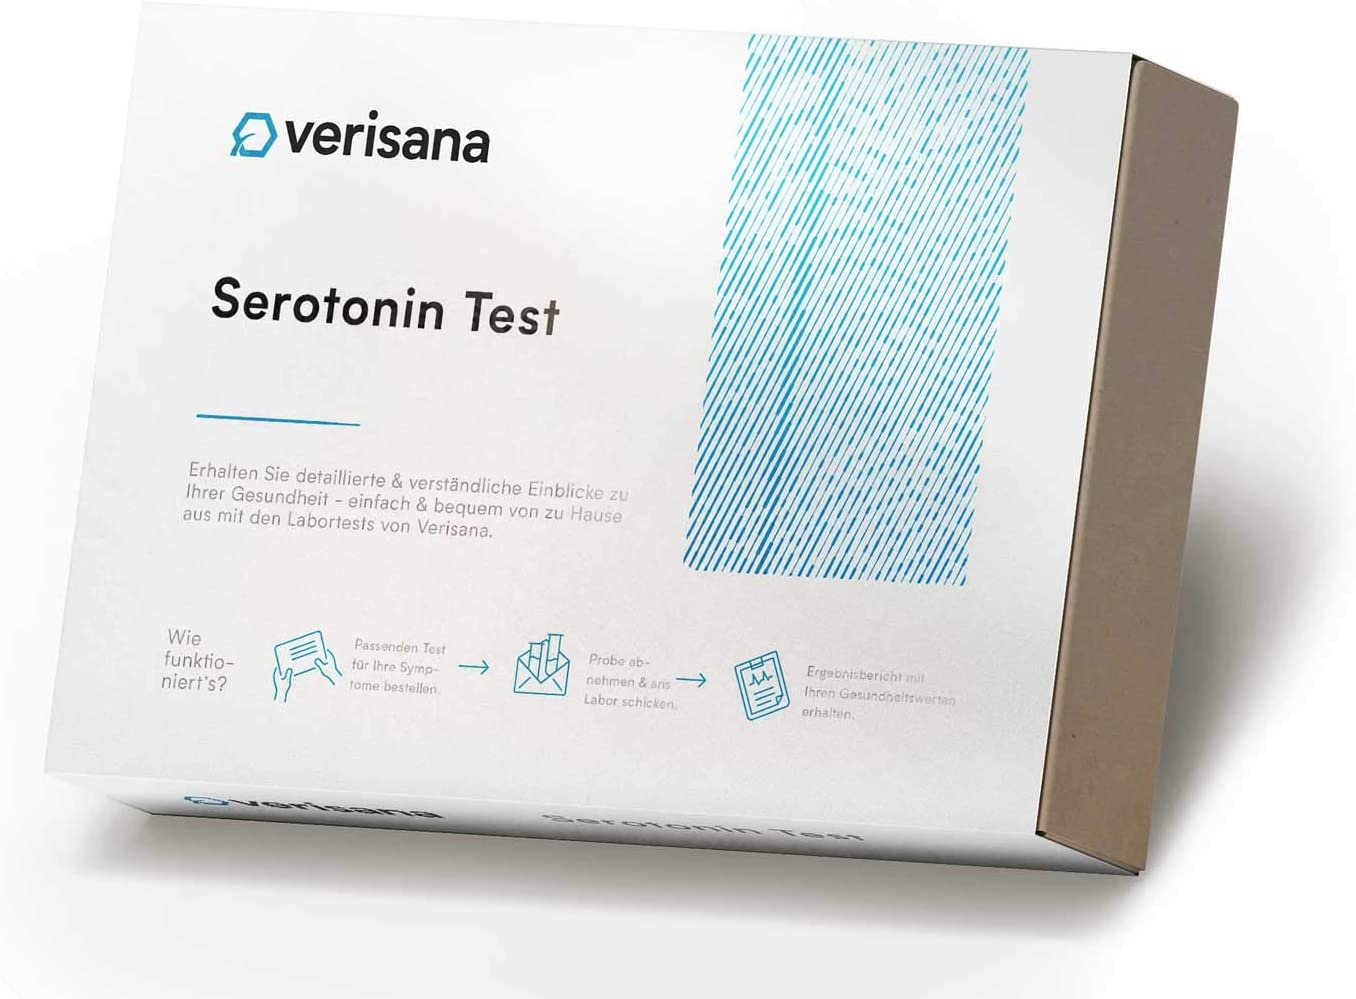 Serotonin Test